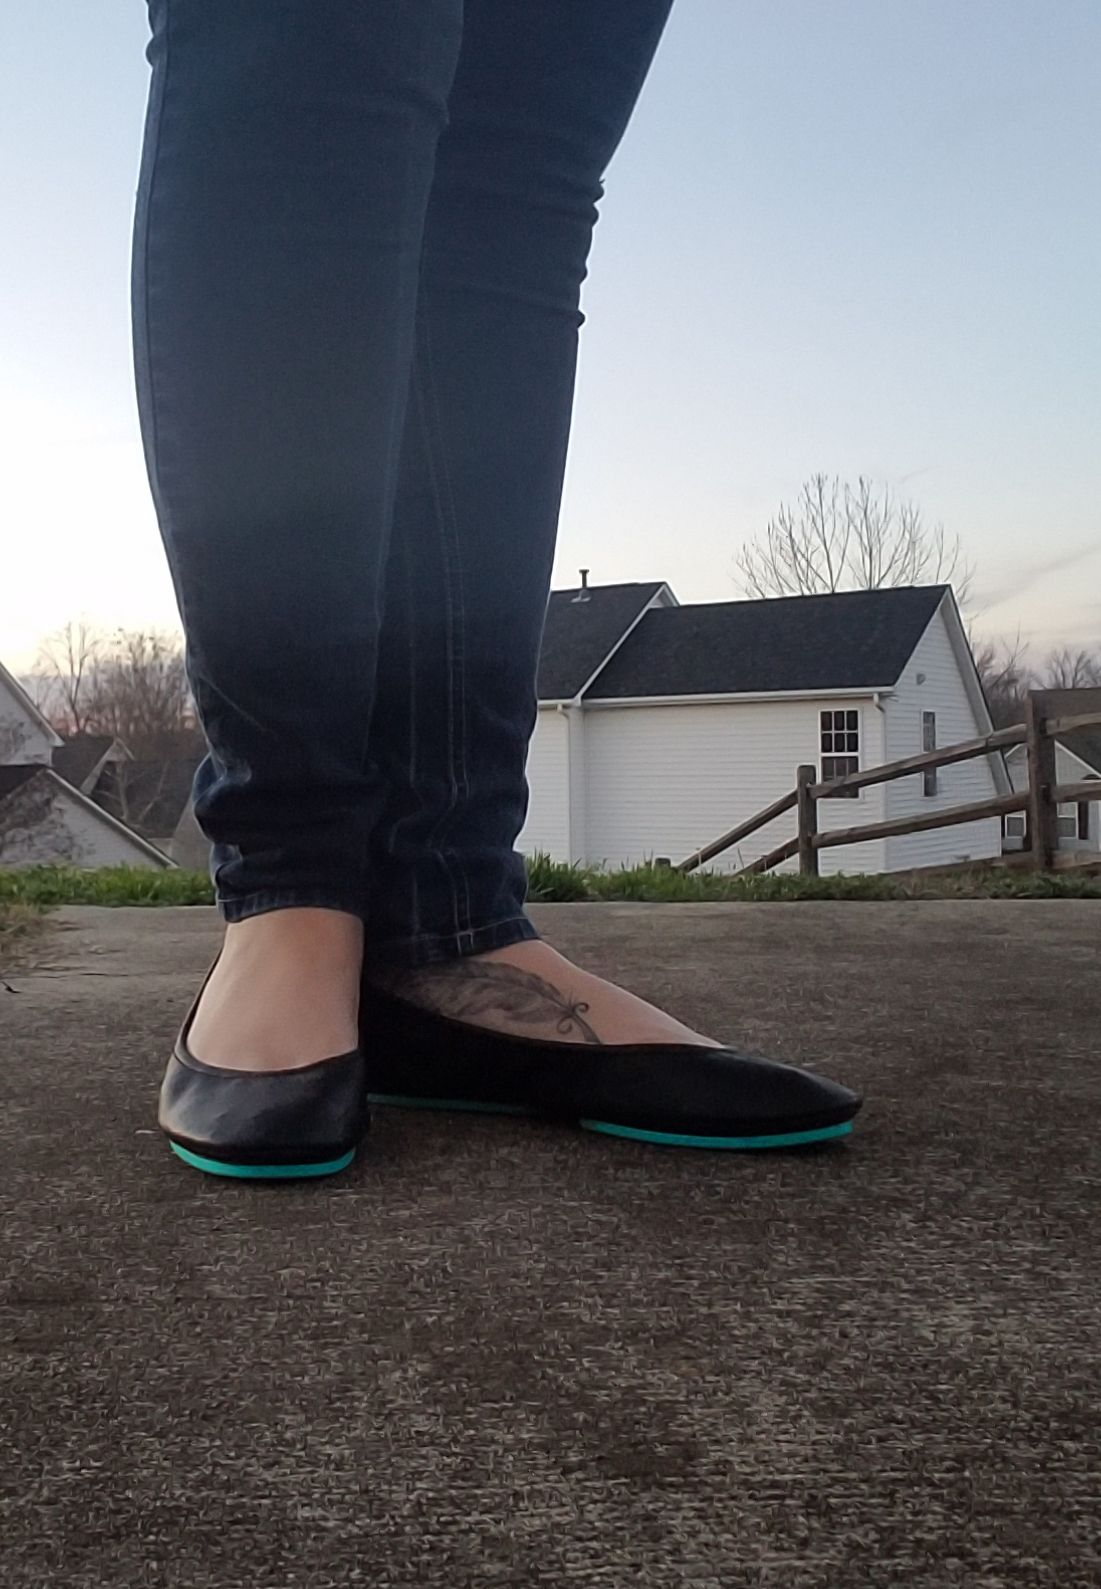 775a7acfc7 My Day 5 Tieks Review: Are They Actually Worth It? - Mommy's Block Party